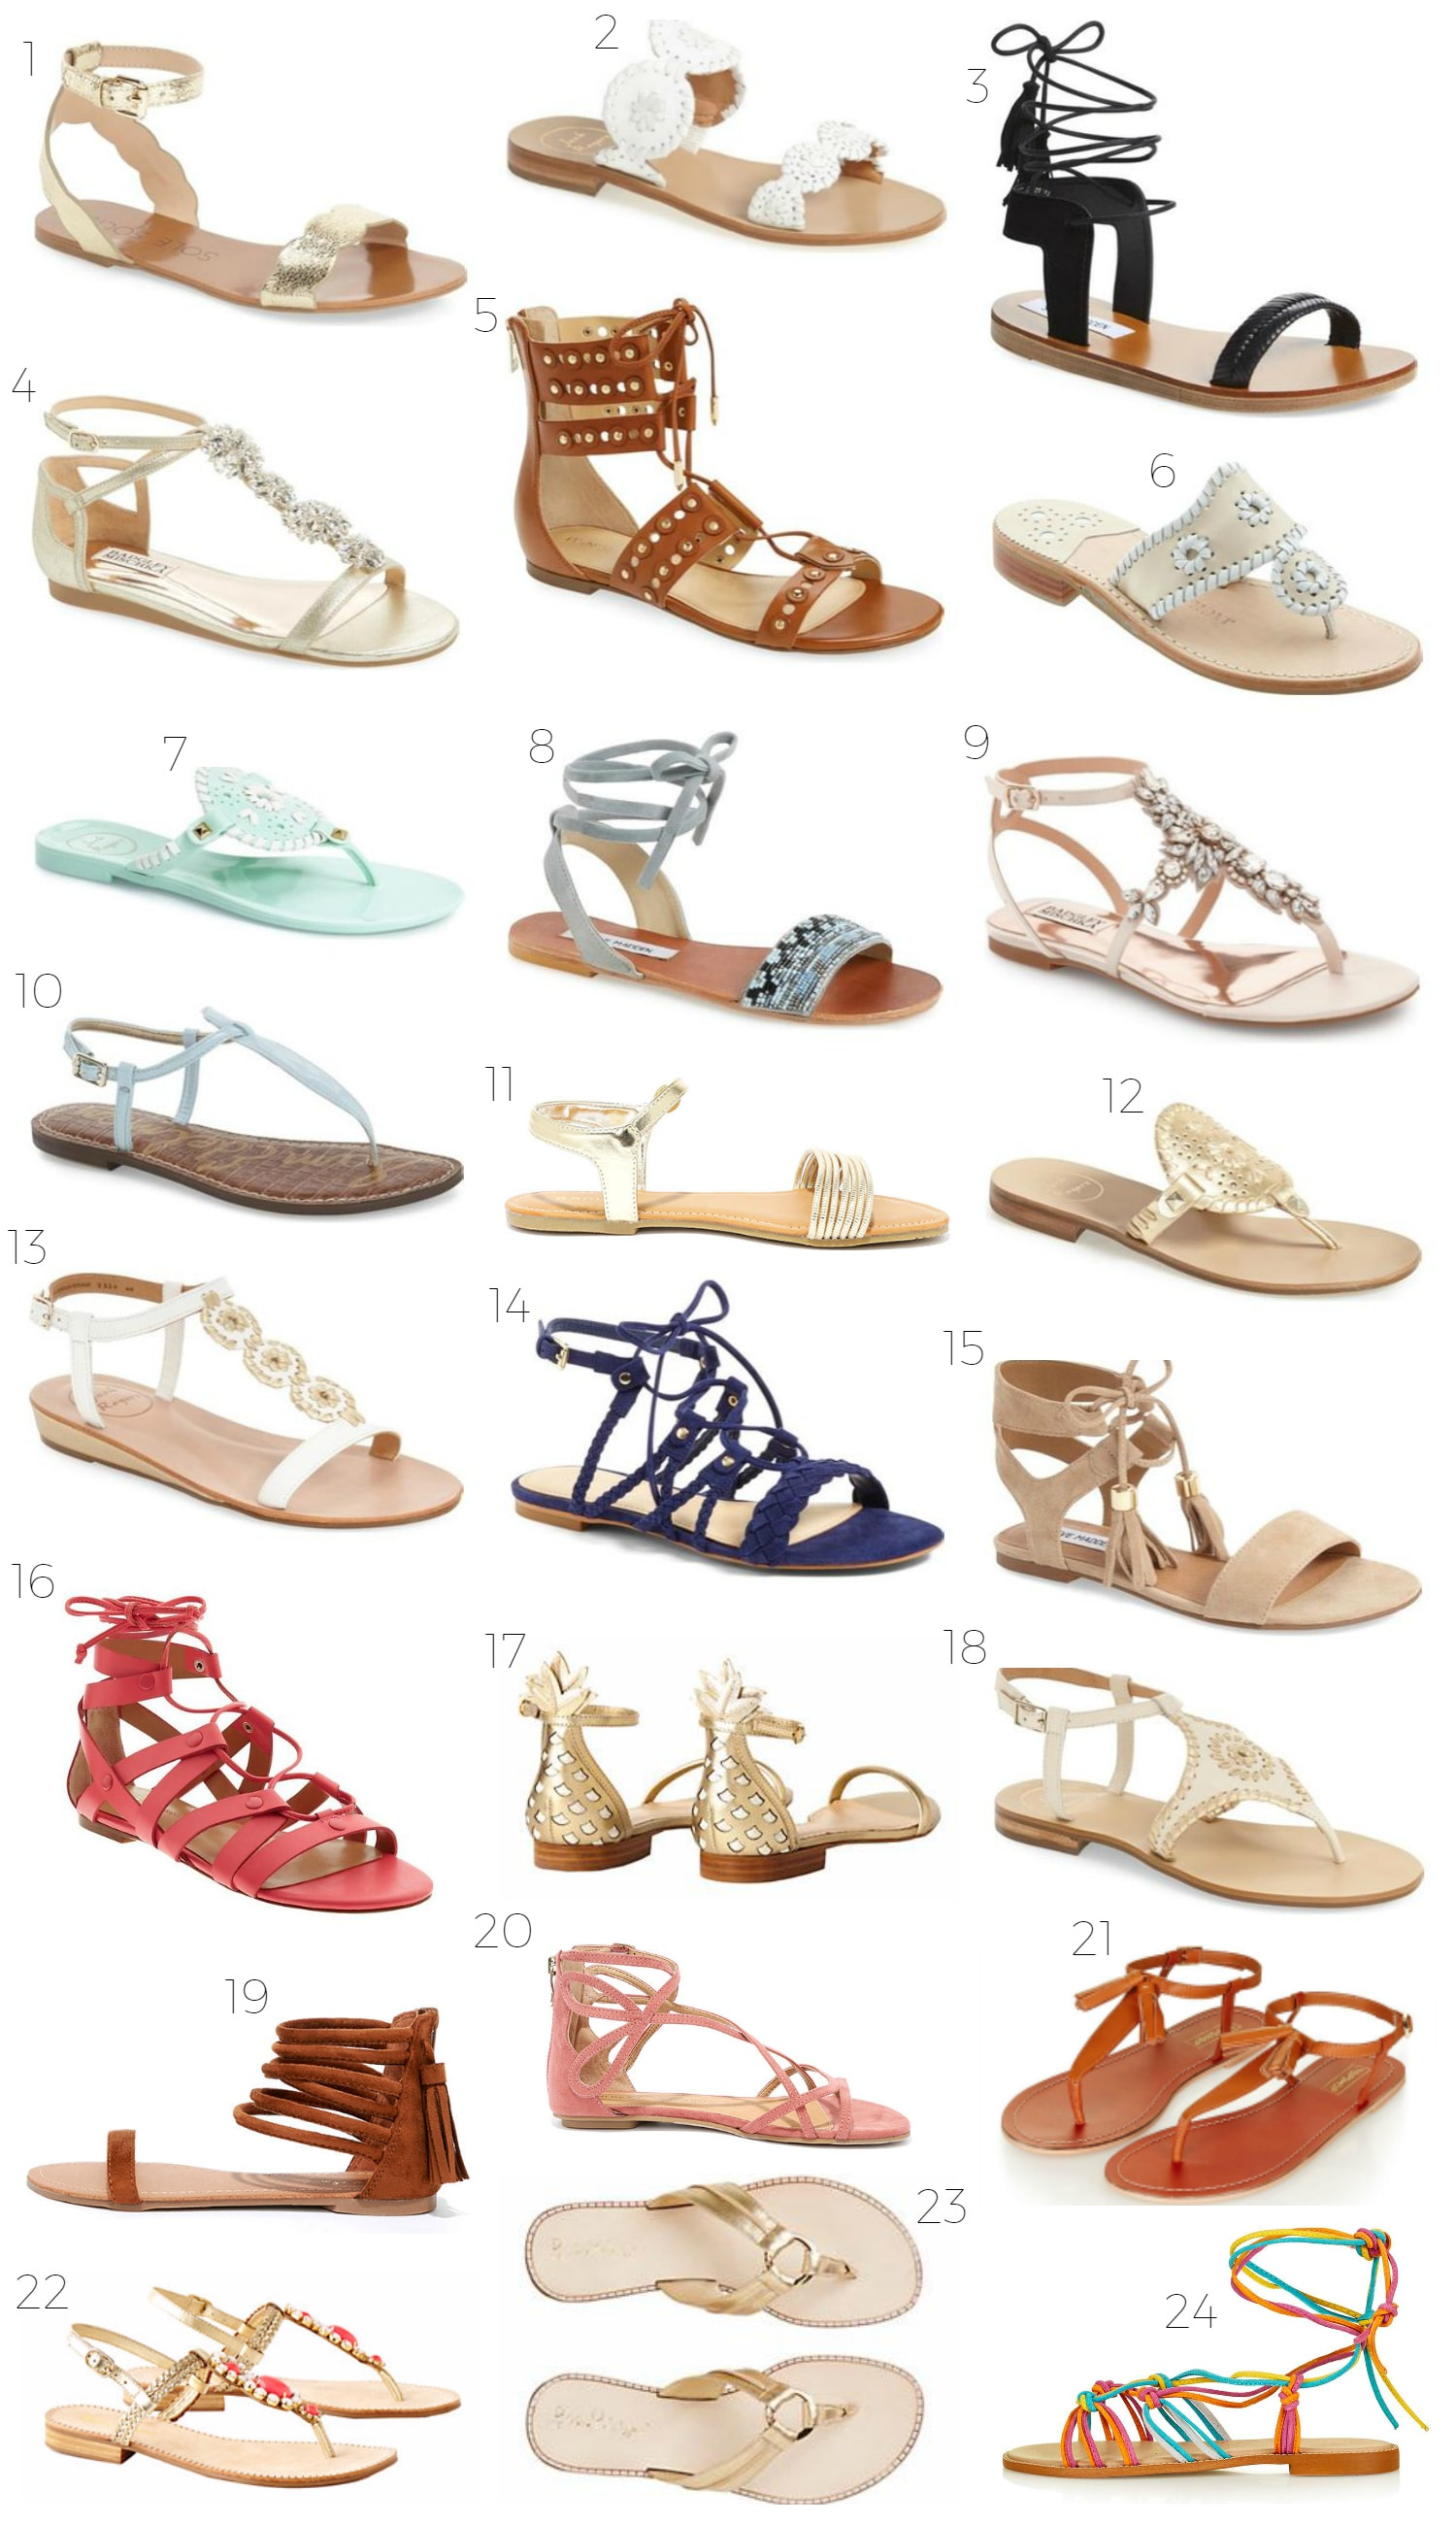 Looking for a cute pair of summer sandals? Style blogger Ashley Brooke Nicholas has rounded up the cutest summer sandals, and there's a pair that fits every single budget! If you're a fan of embellished sandals, lace-up sandals, chic and simple sandals, and studded sandals, you're gonna love this post!